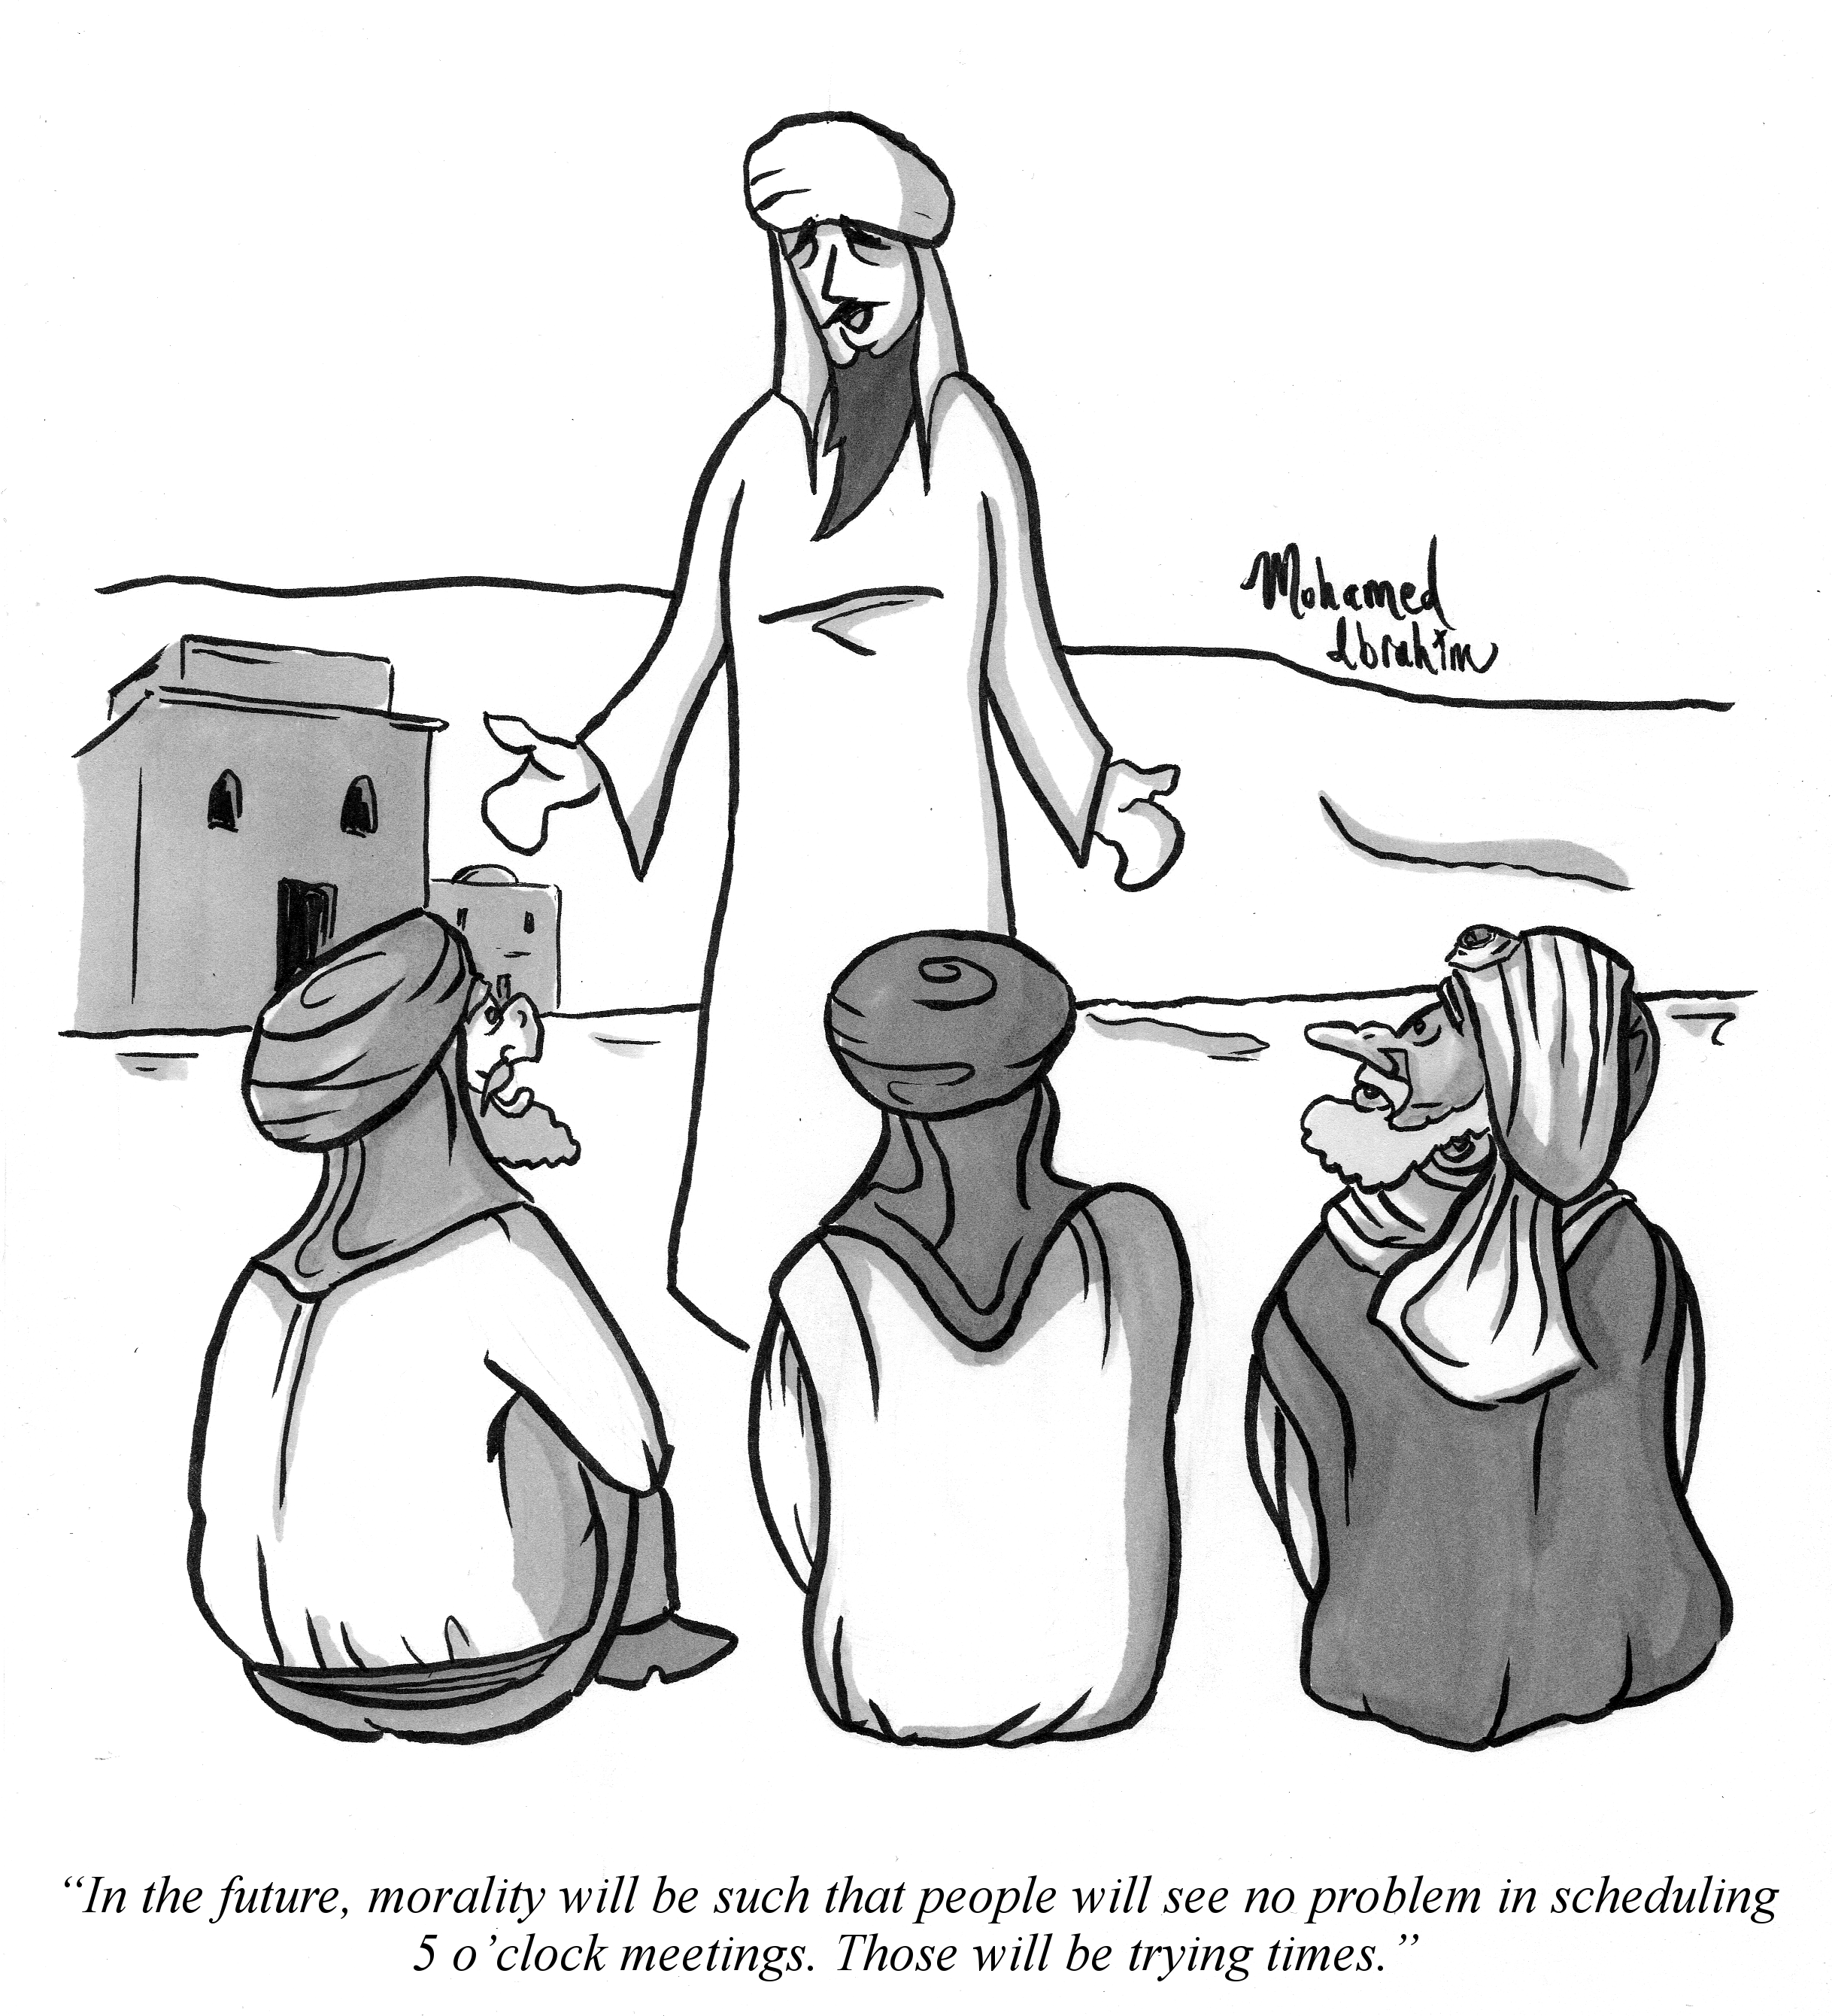 muhammad portends moral decay